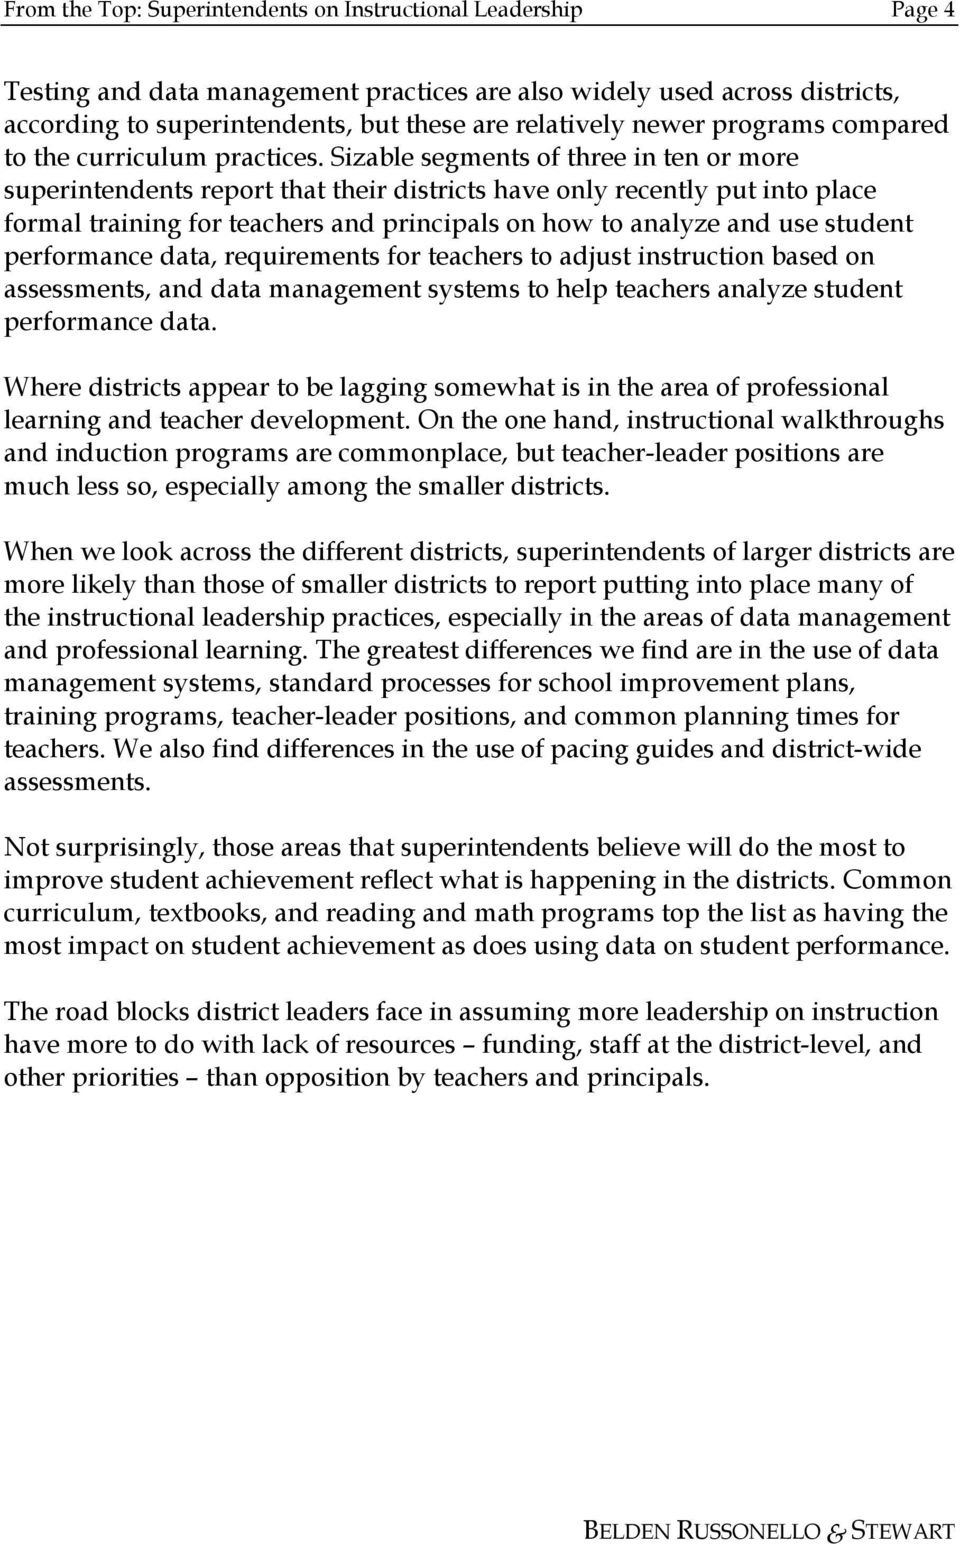 Sizable segments of three in ten or more superintendents report that their districts have only recently put into place formal training for teachers and principals on how to analyze and use student